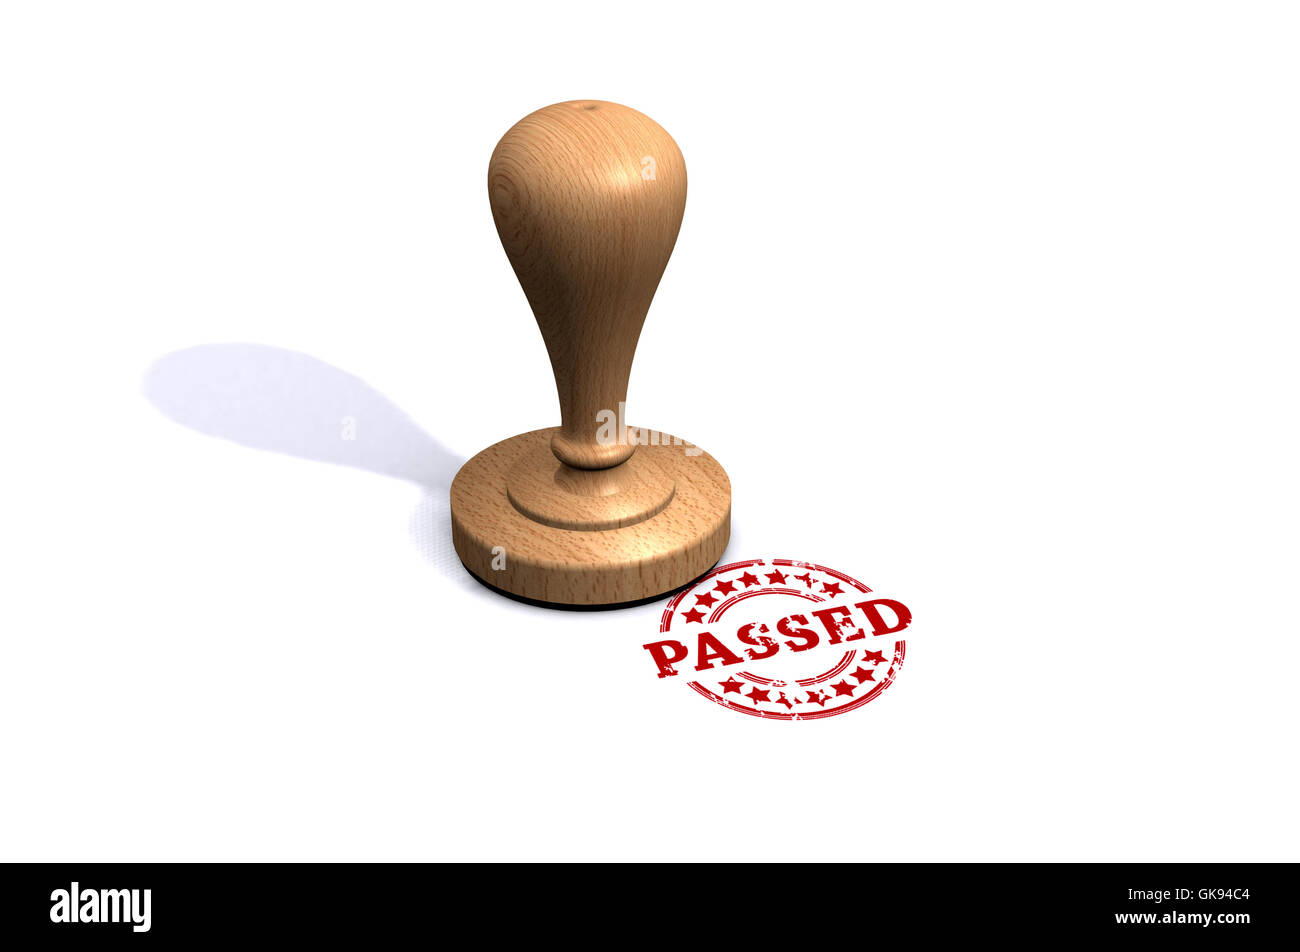 Passed Stamp - Stock Image